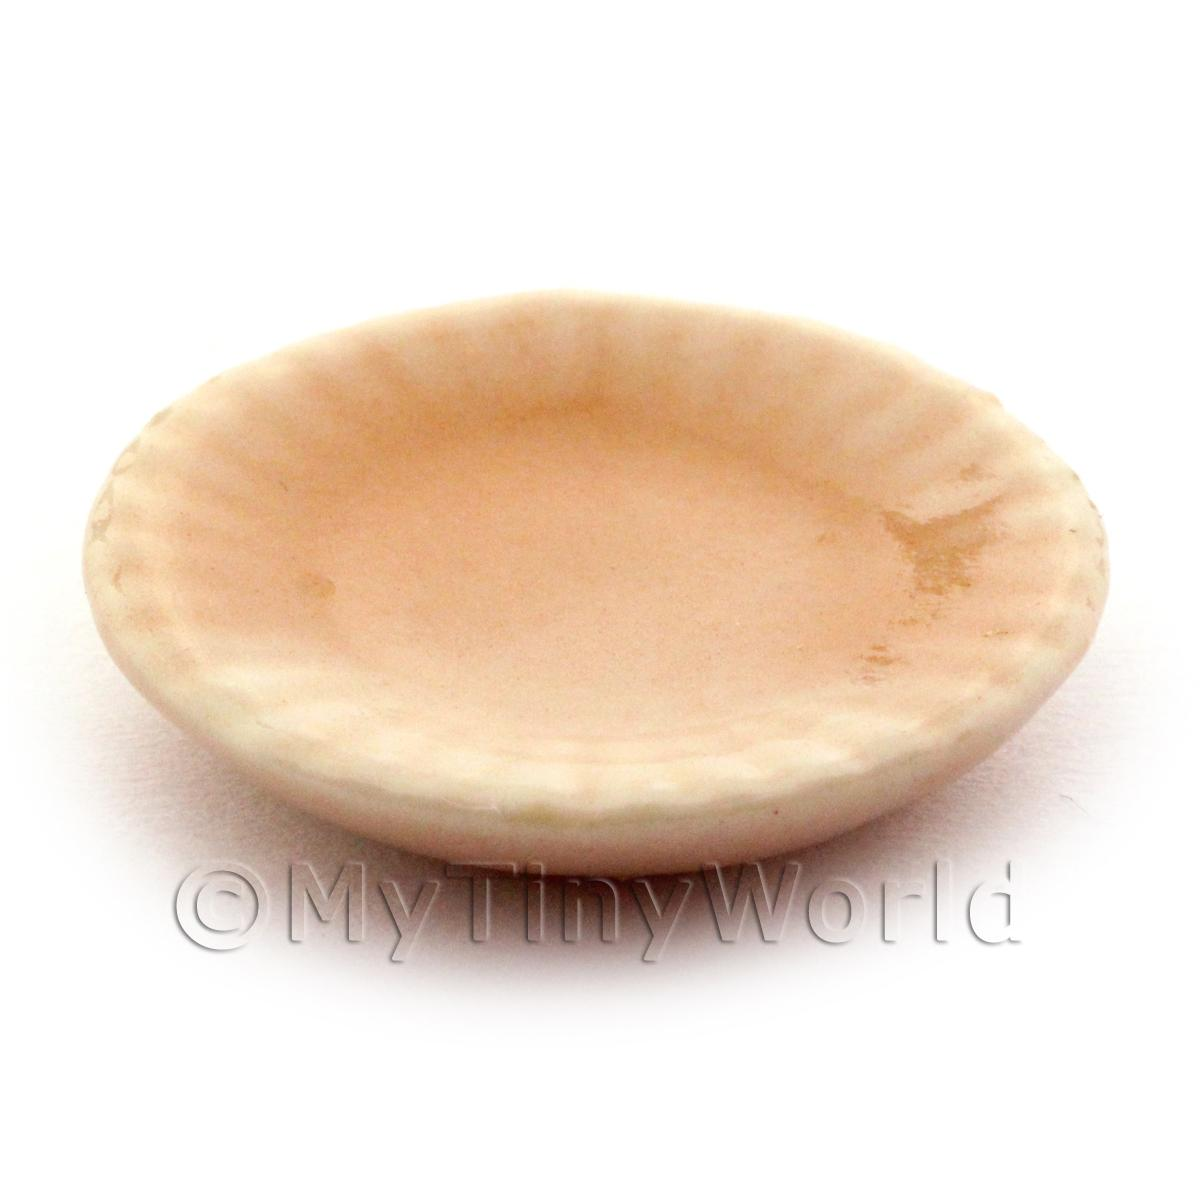 23mm Dolls House Miniature Salmon Glazed Ceramic Fluted Plate